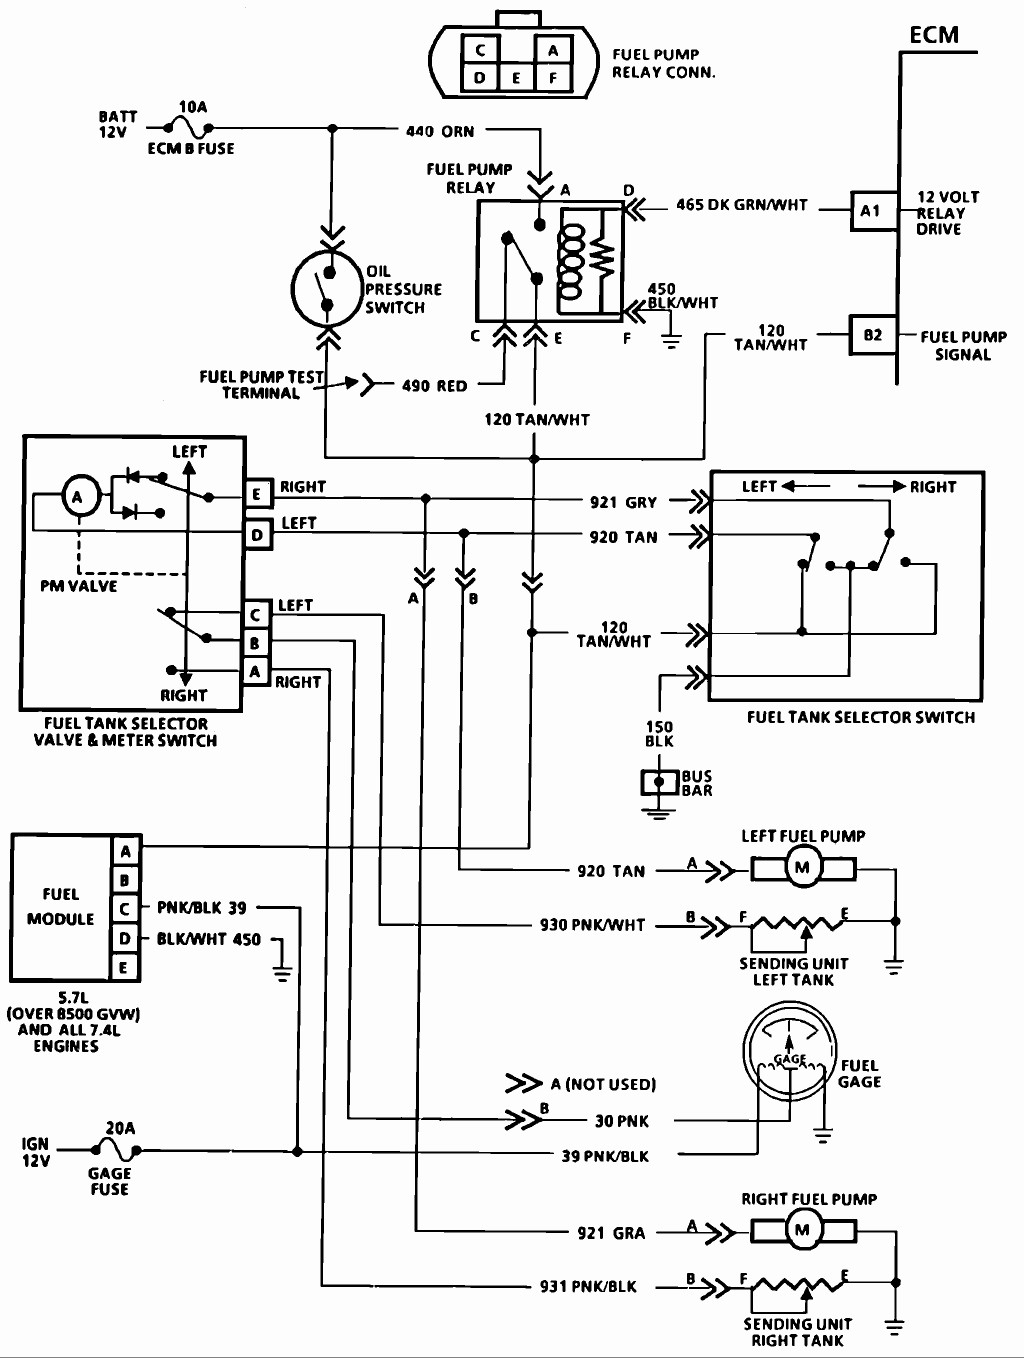 1994 gmc fuel pump wiring my wiring diagramchevy truck fuel pump wiring diagram data schema 1994 gmc sierra 1500 fuel pump relay location 1994 gmc fuel pump wiring